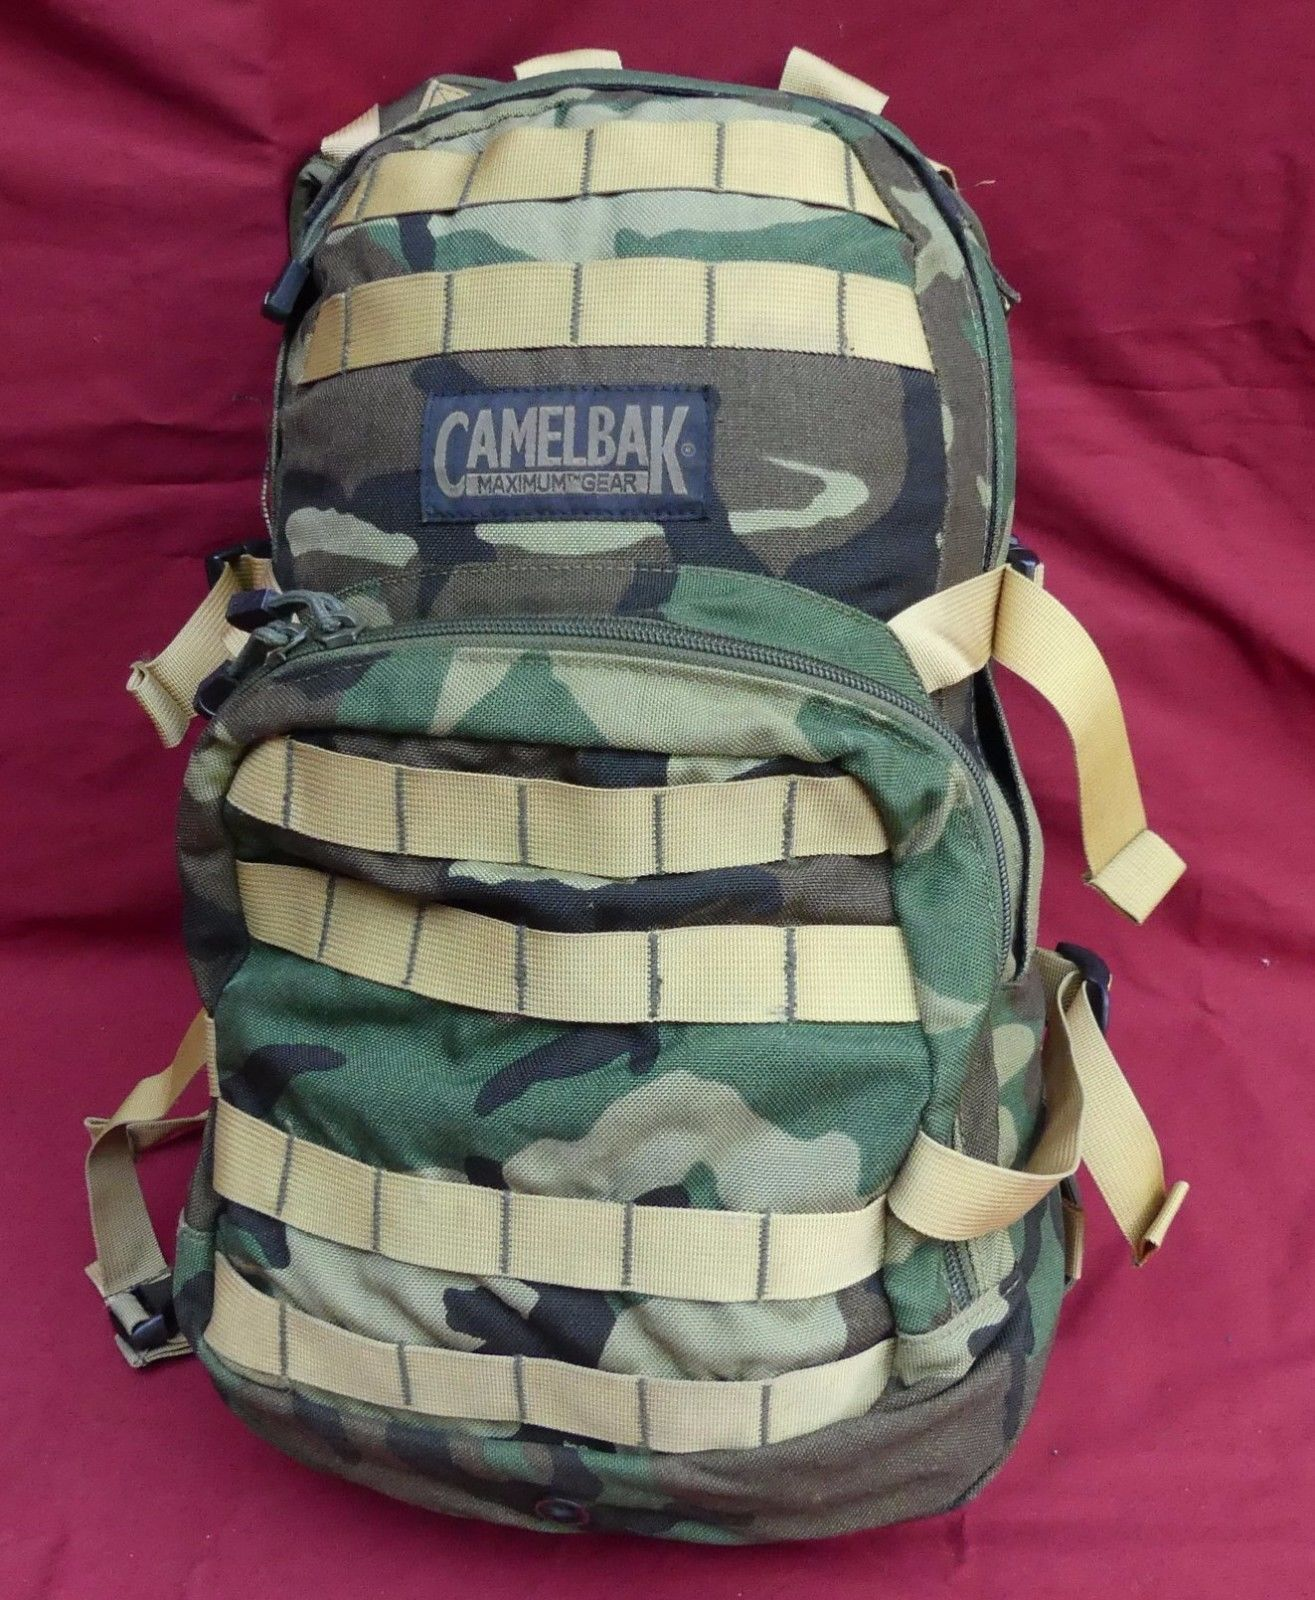 624b6202a2 ... CamelBak's H.A.W.G. This system carries over 1280 cu. in.(20.9L) of gear  and water comfortably on an Independent Suspension Harness, no matter how  ...